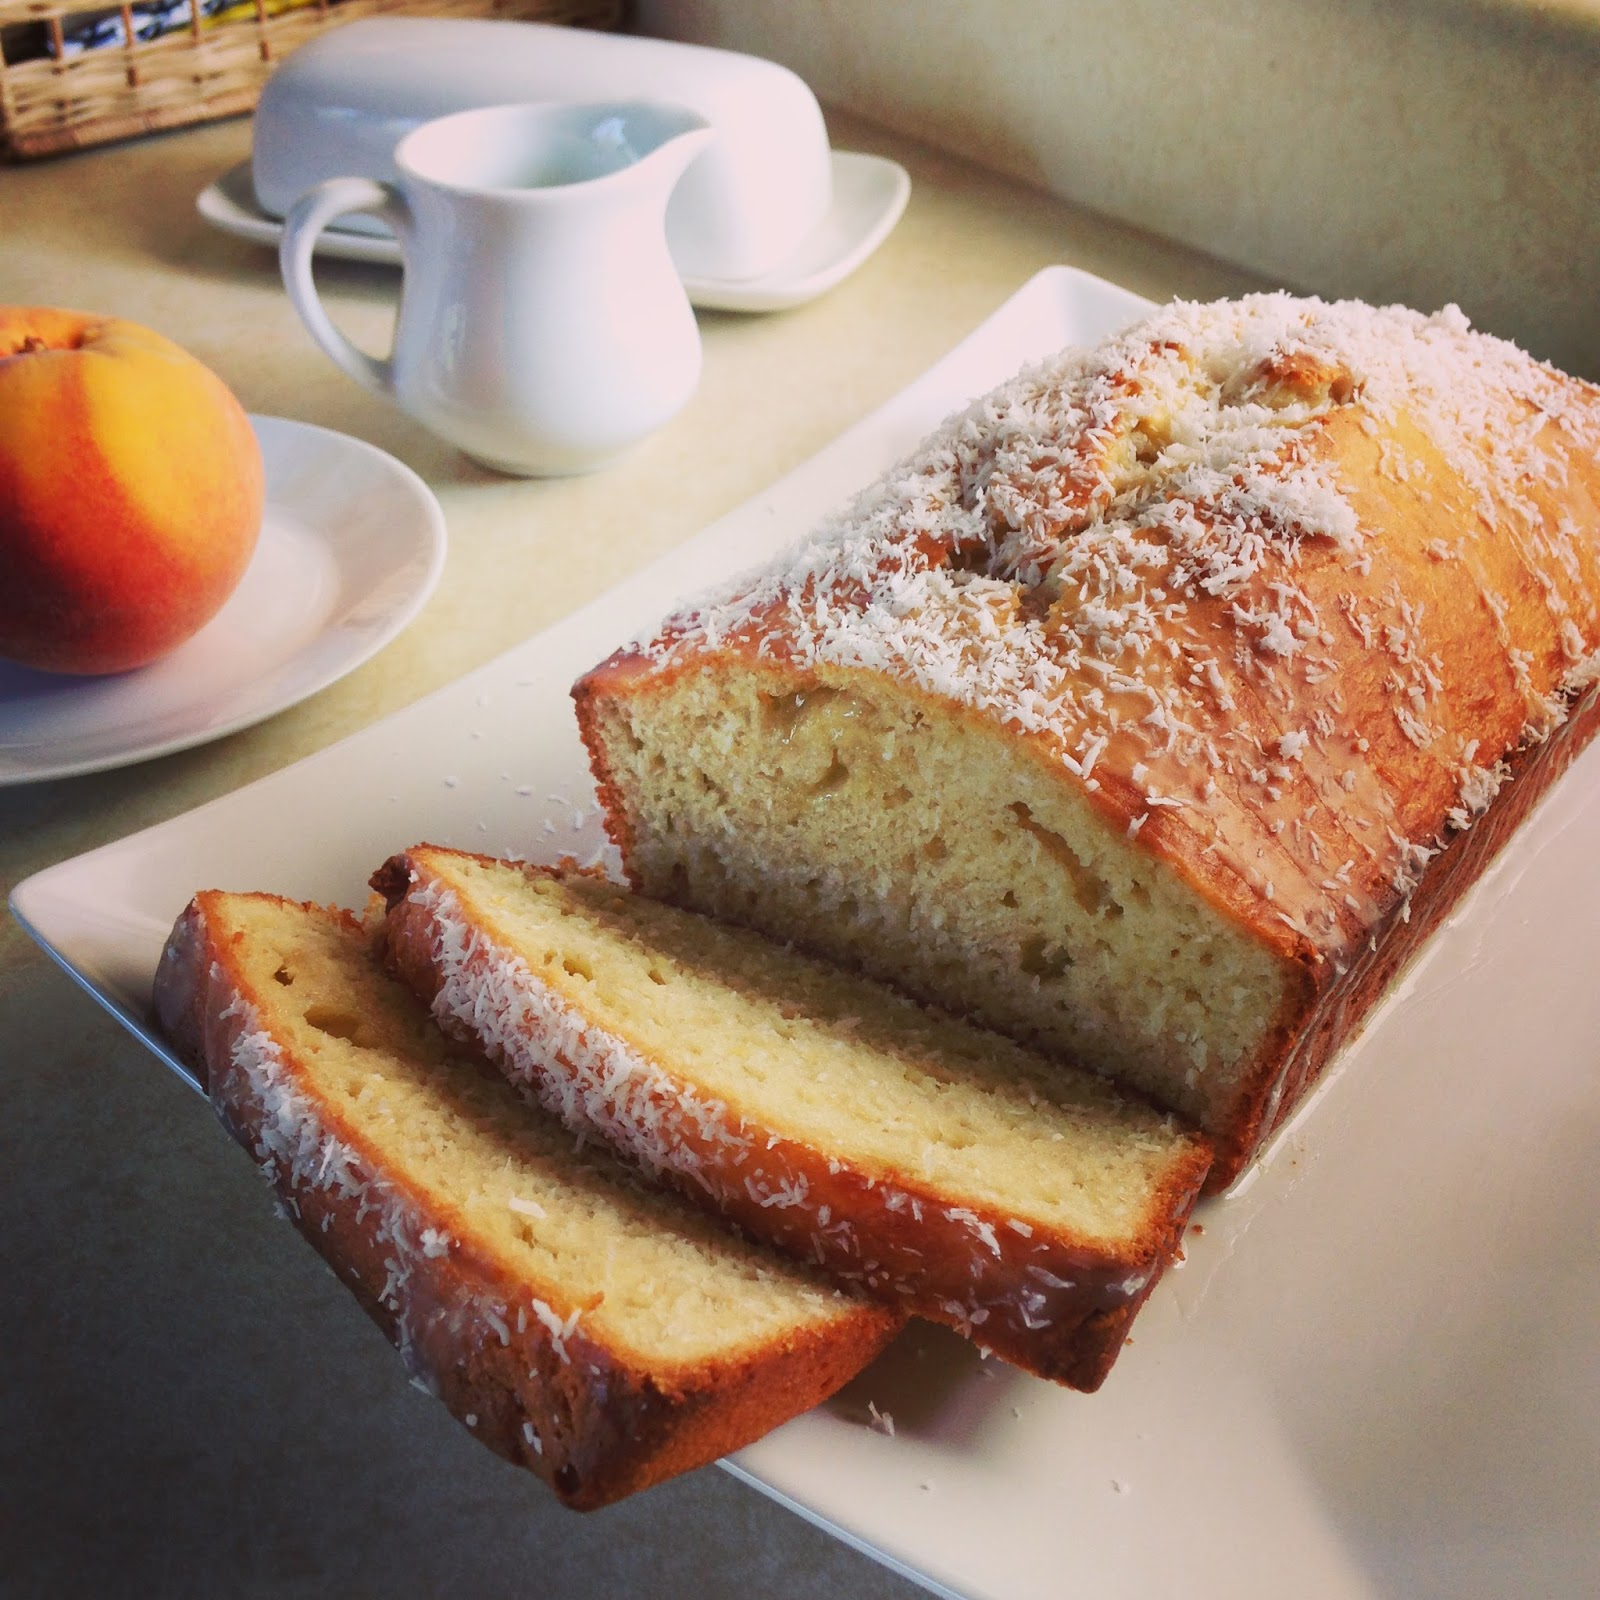 Cultural Cooking: Coconut Banana Bread with Lemon Glaze